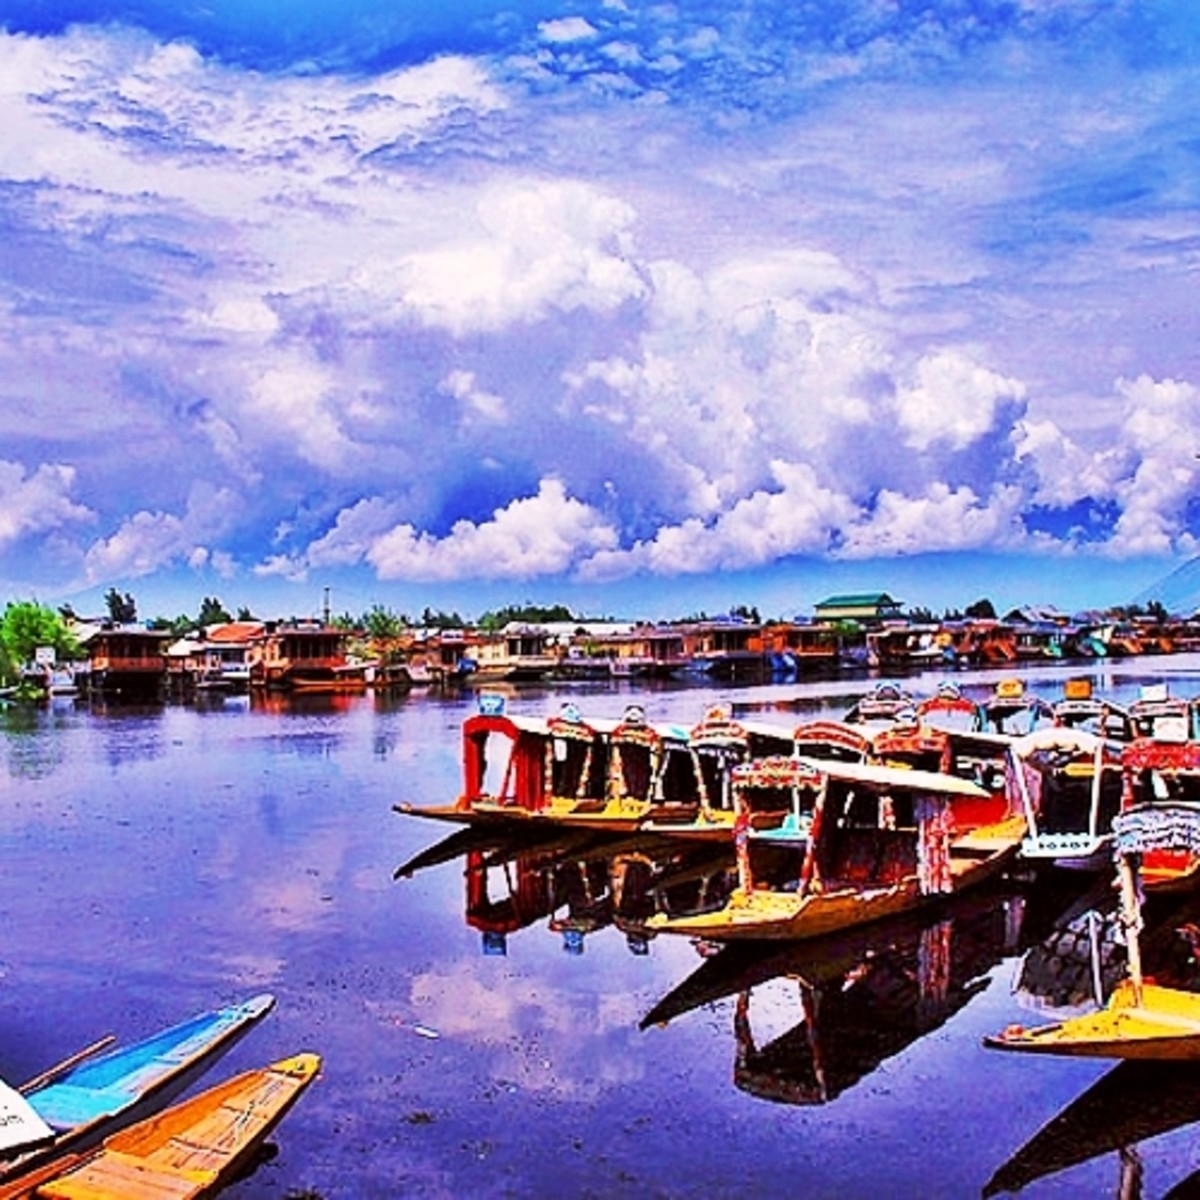 Kashmir: Heaven on Earth